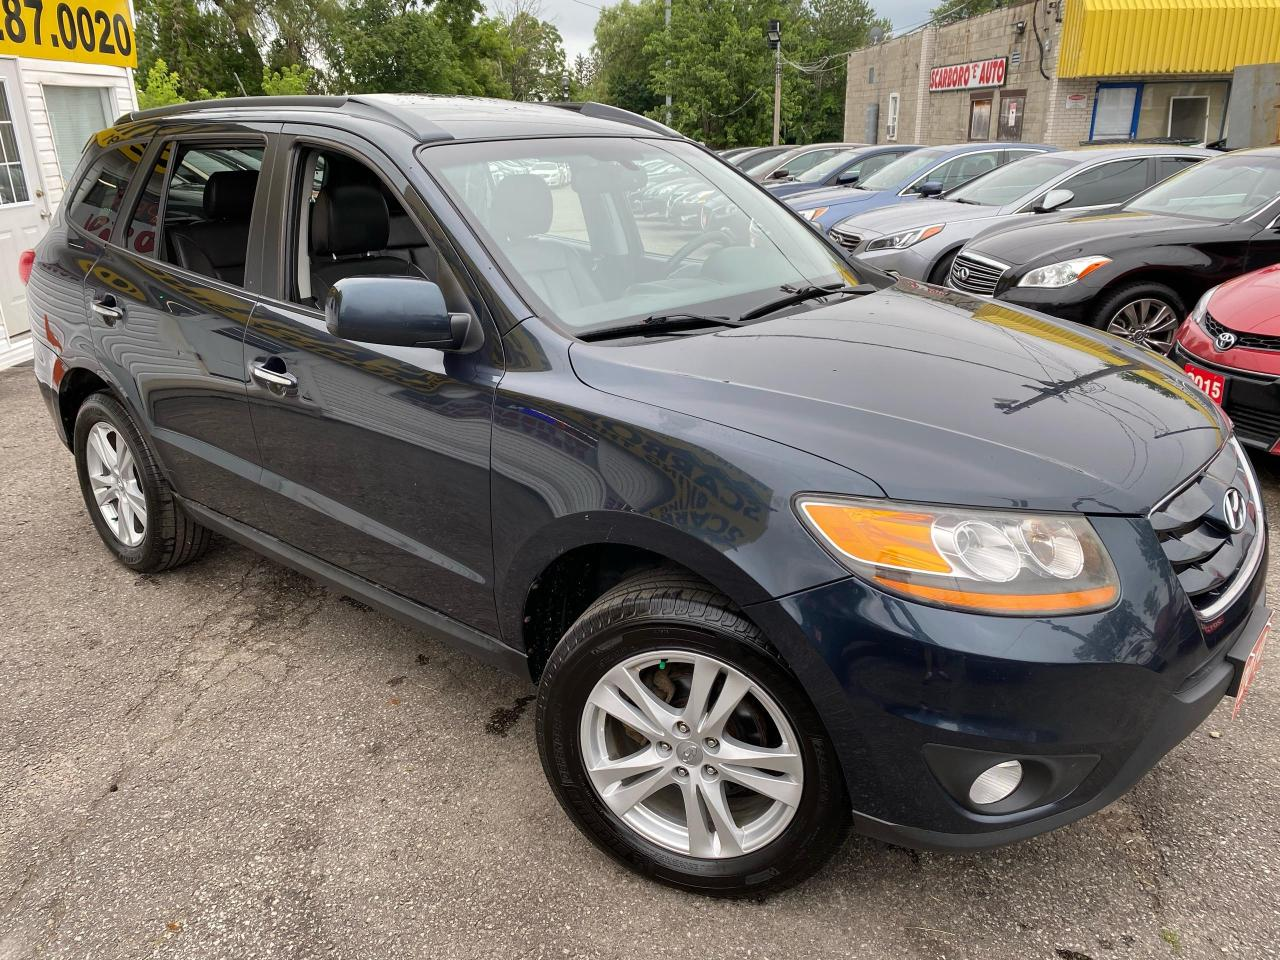 used 2010 hyundai santa fe limited for sale in scarborough, ontario carpages.ca